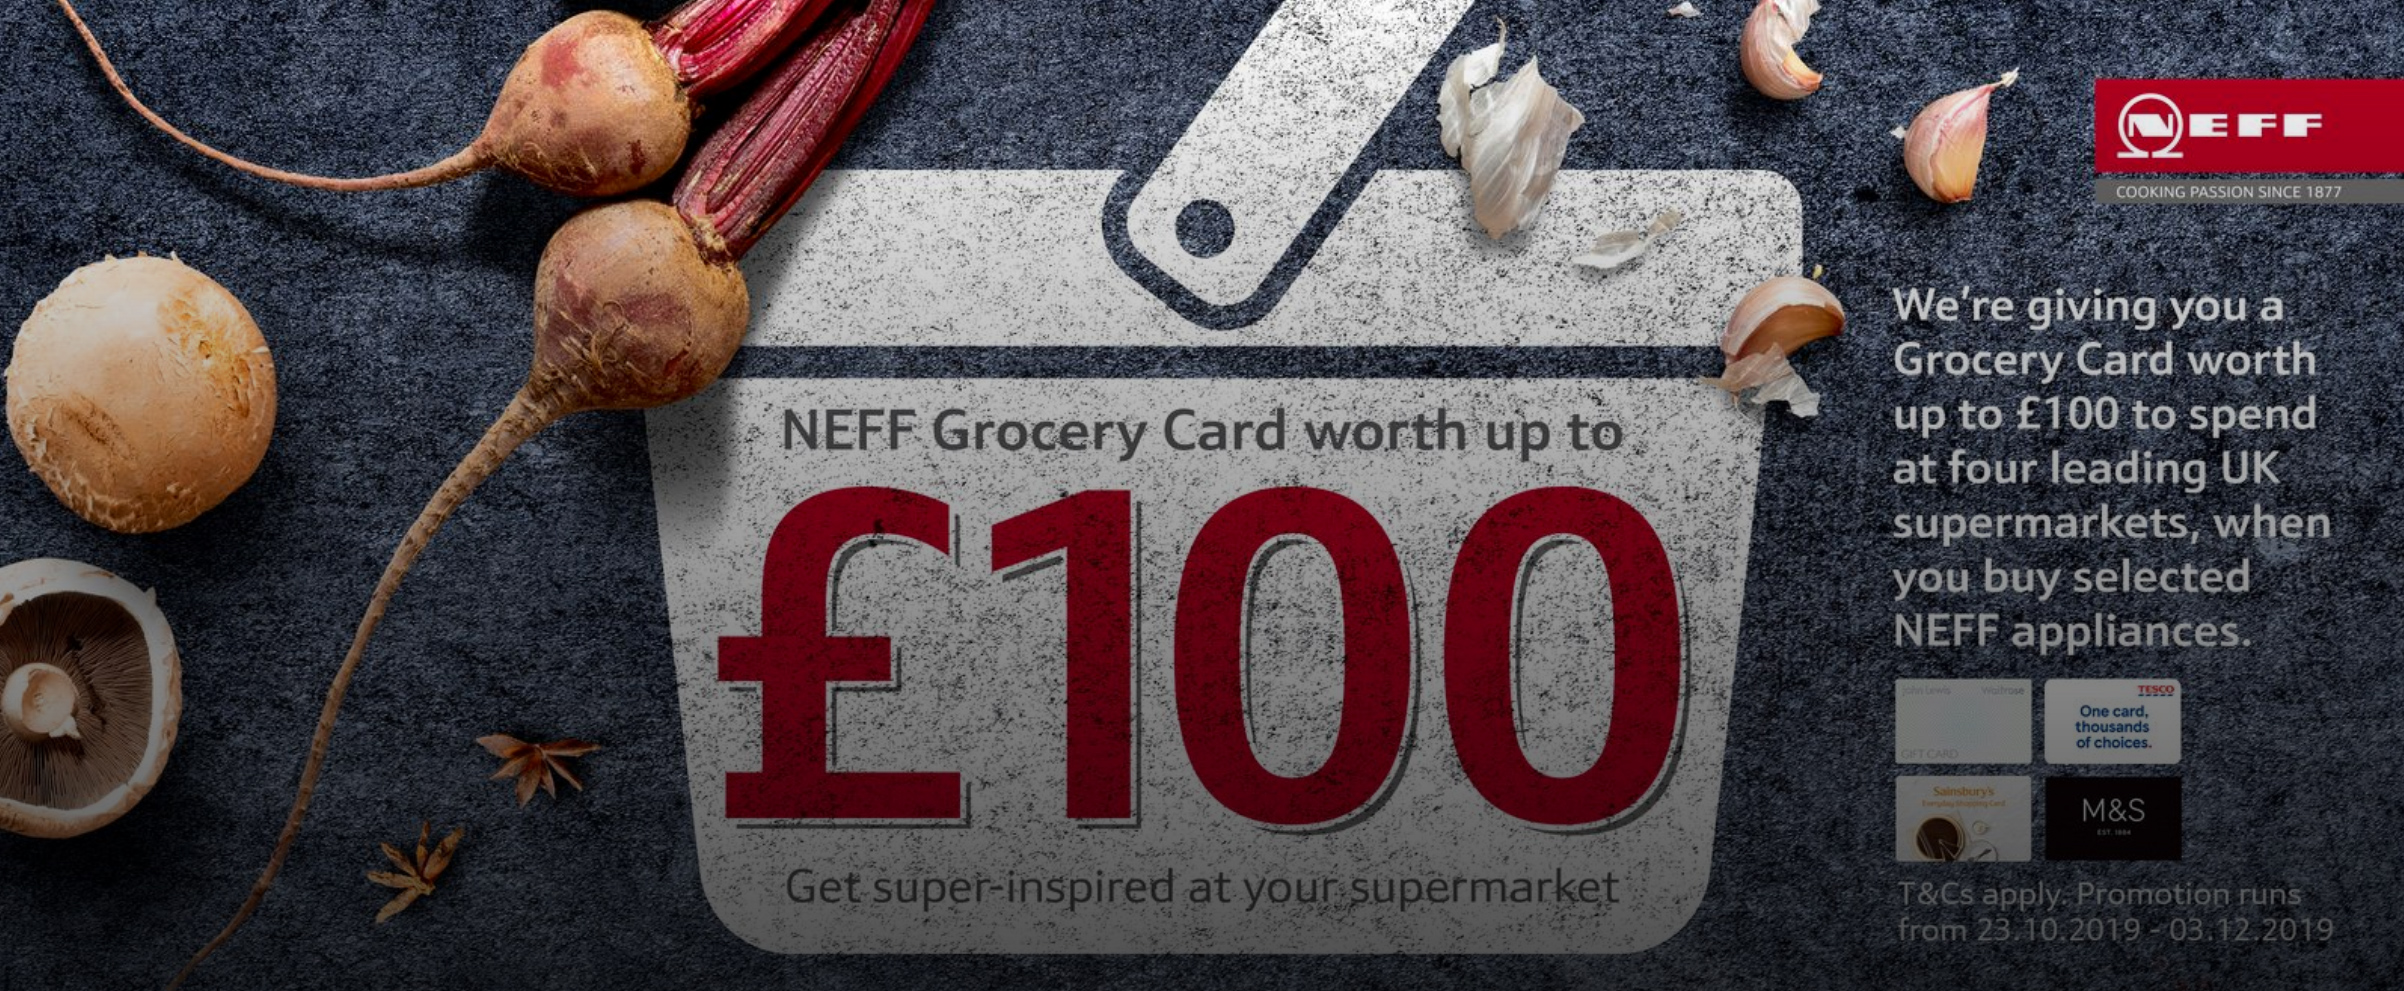 NEFF Autumn Grocery Card promotion 2019